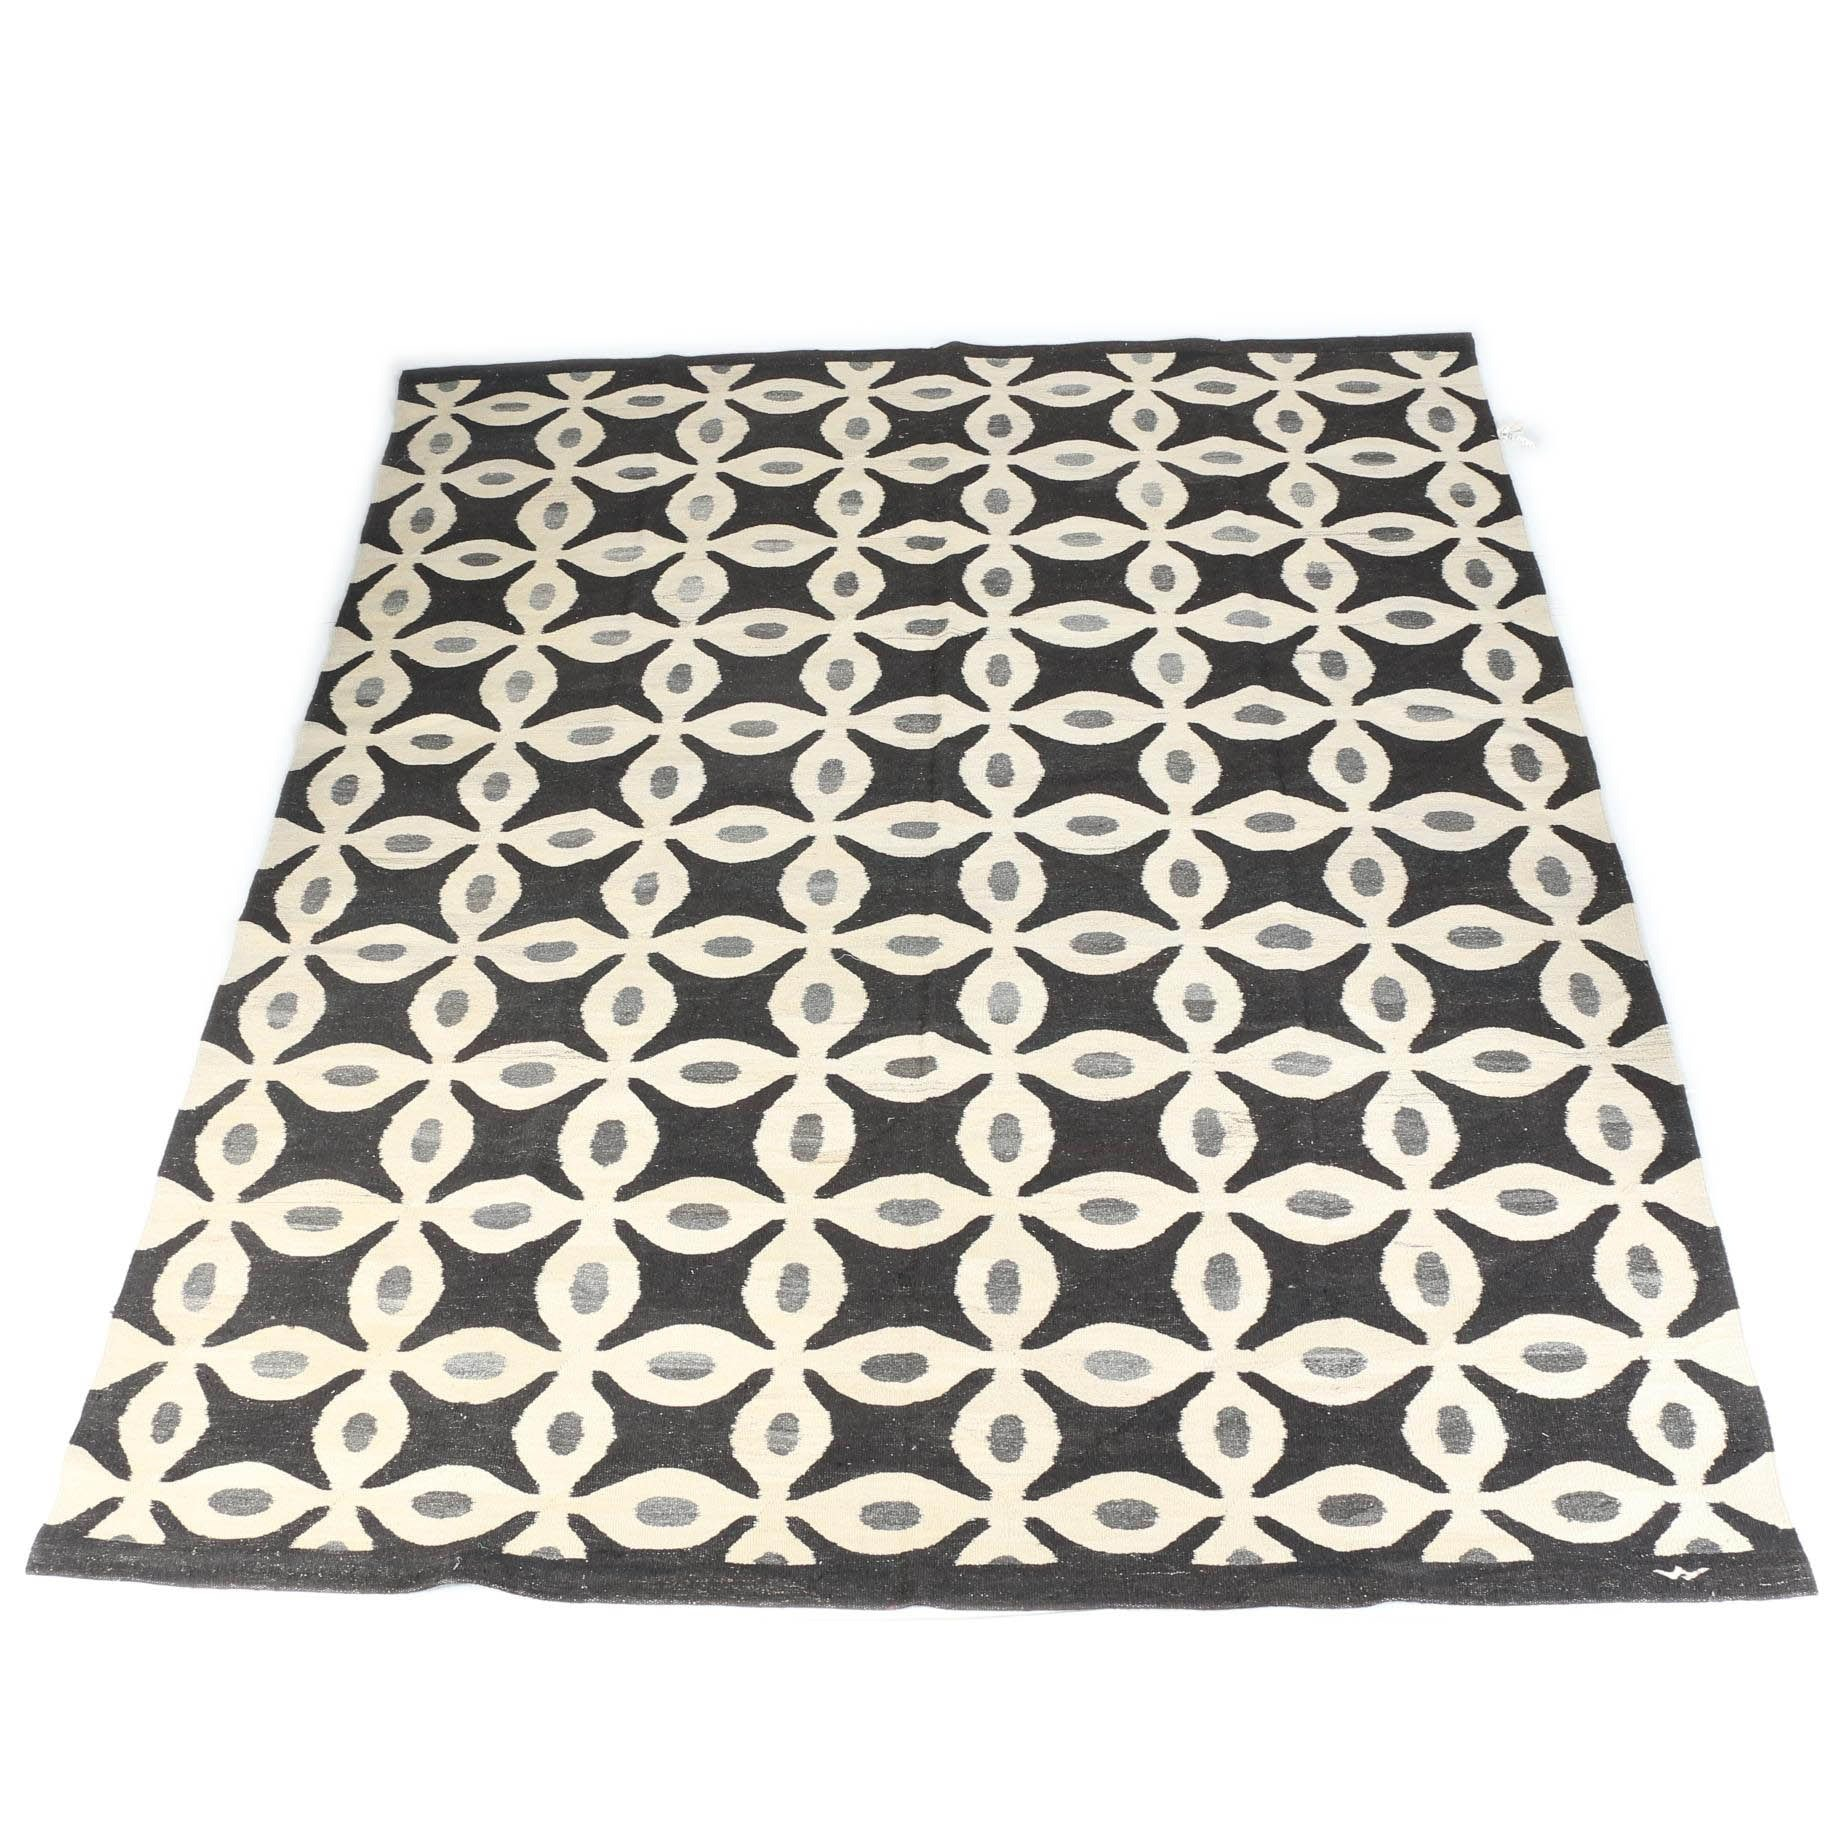 Handwoven Abstract Floral Soumak Style Area Rug